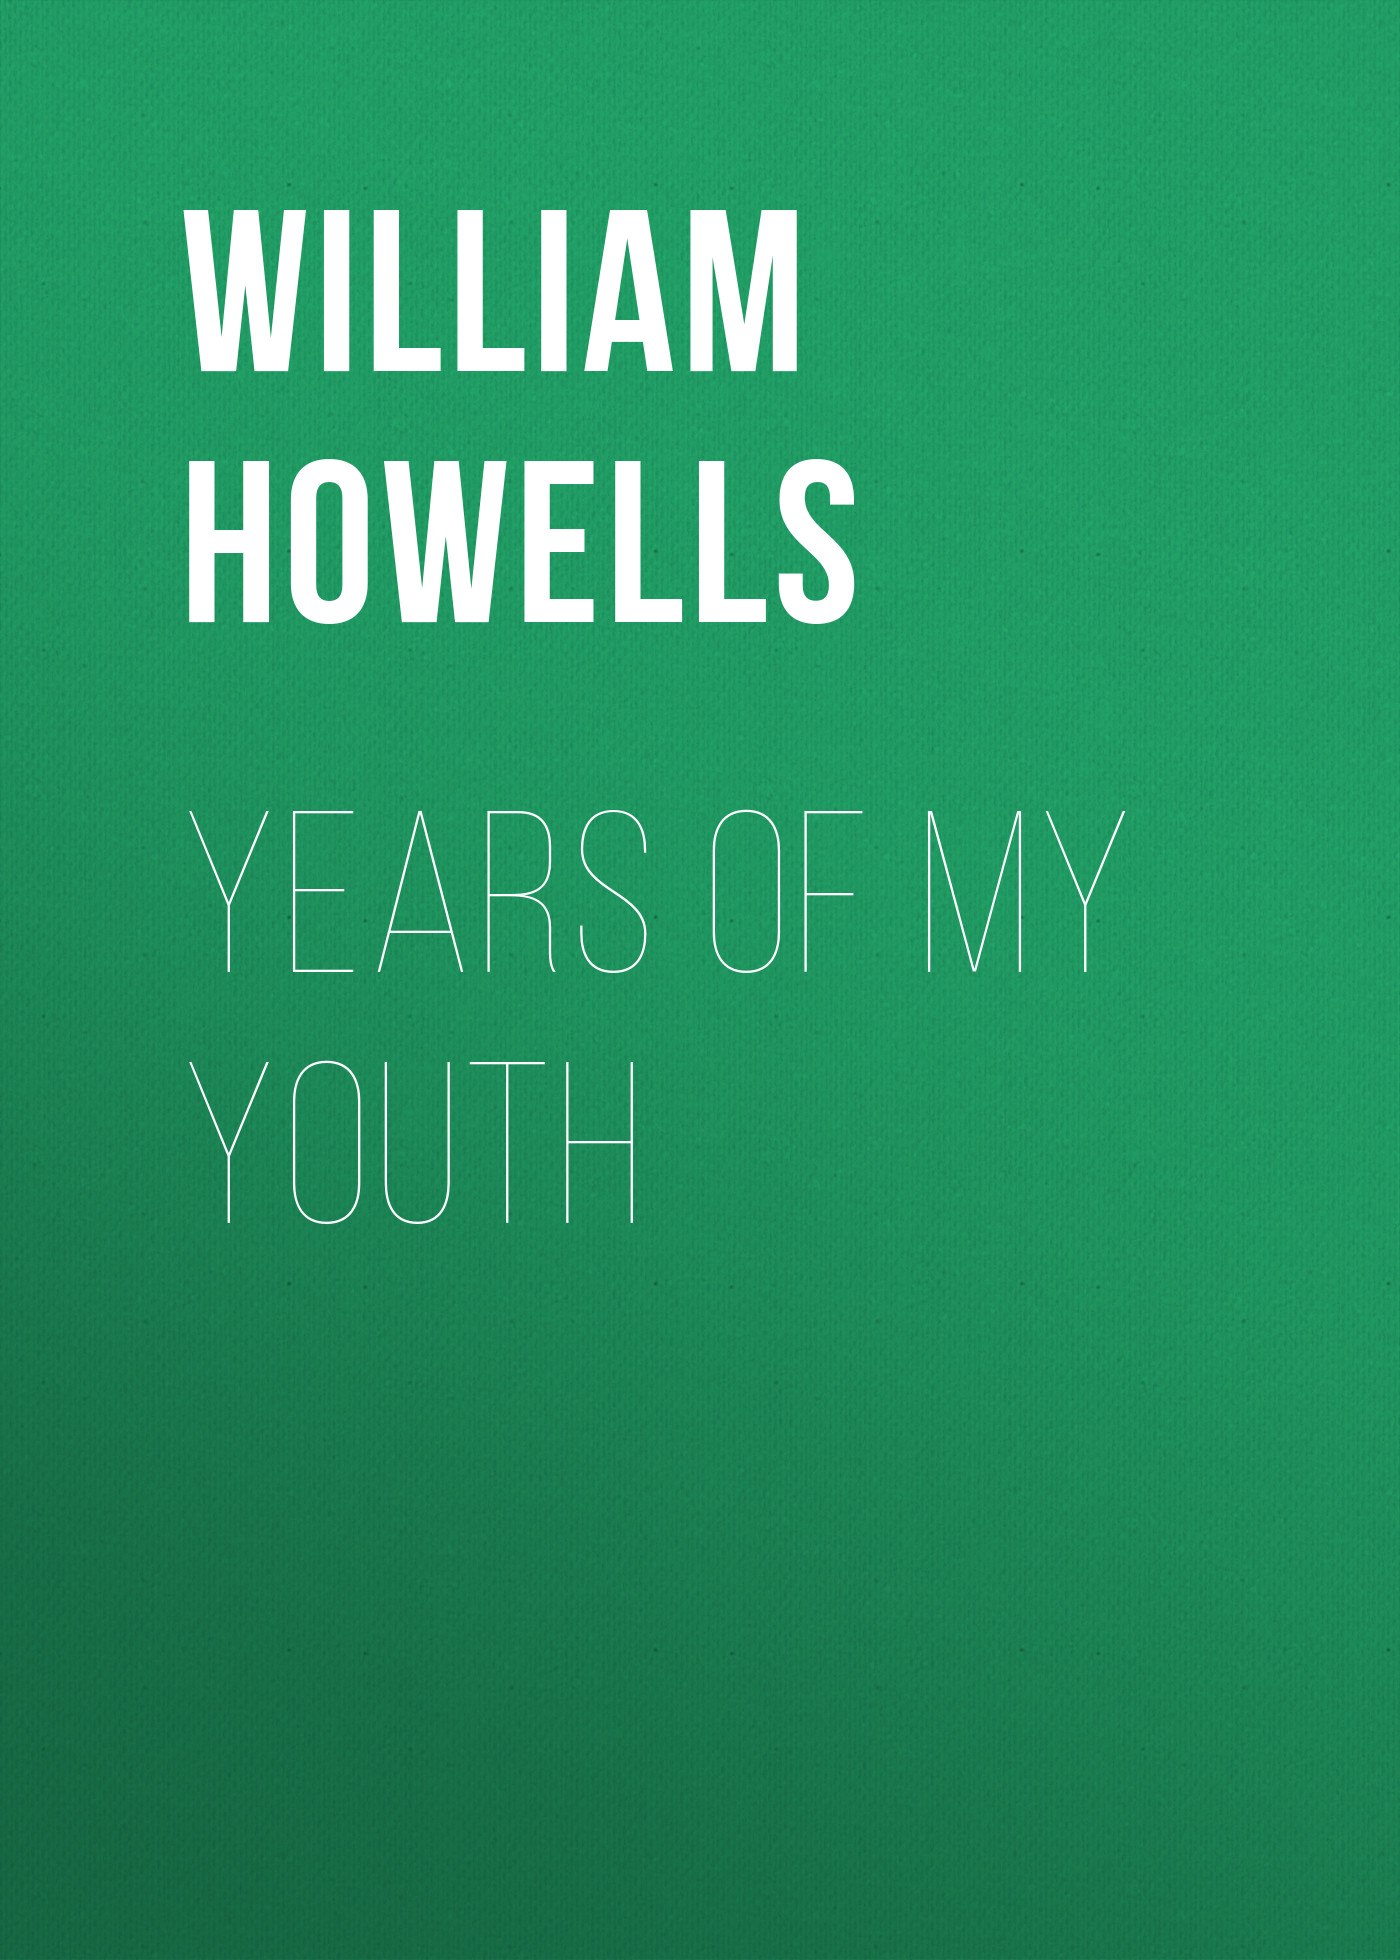 Howells William Dean Years of My Youth howells william dean years of my youth